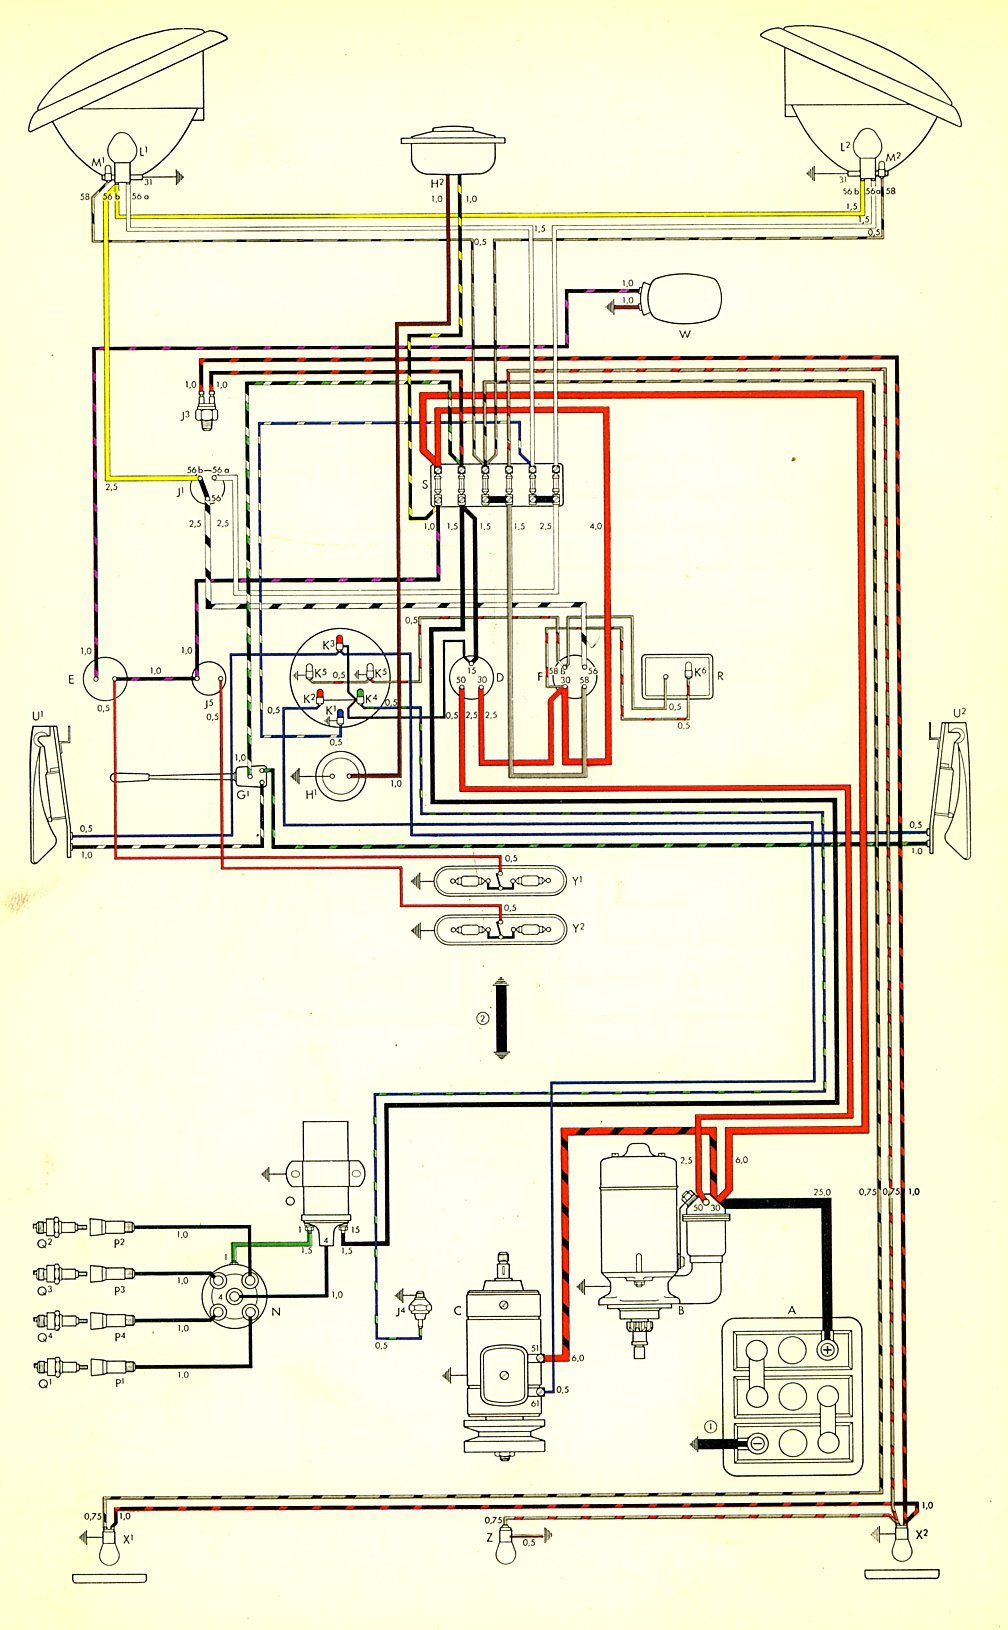 hight resolution of thesamba com type 2 wiring diagrams 1973 vw bus fuse box diagram vw bus fuse diagram